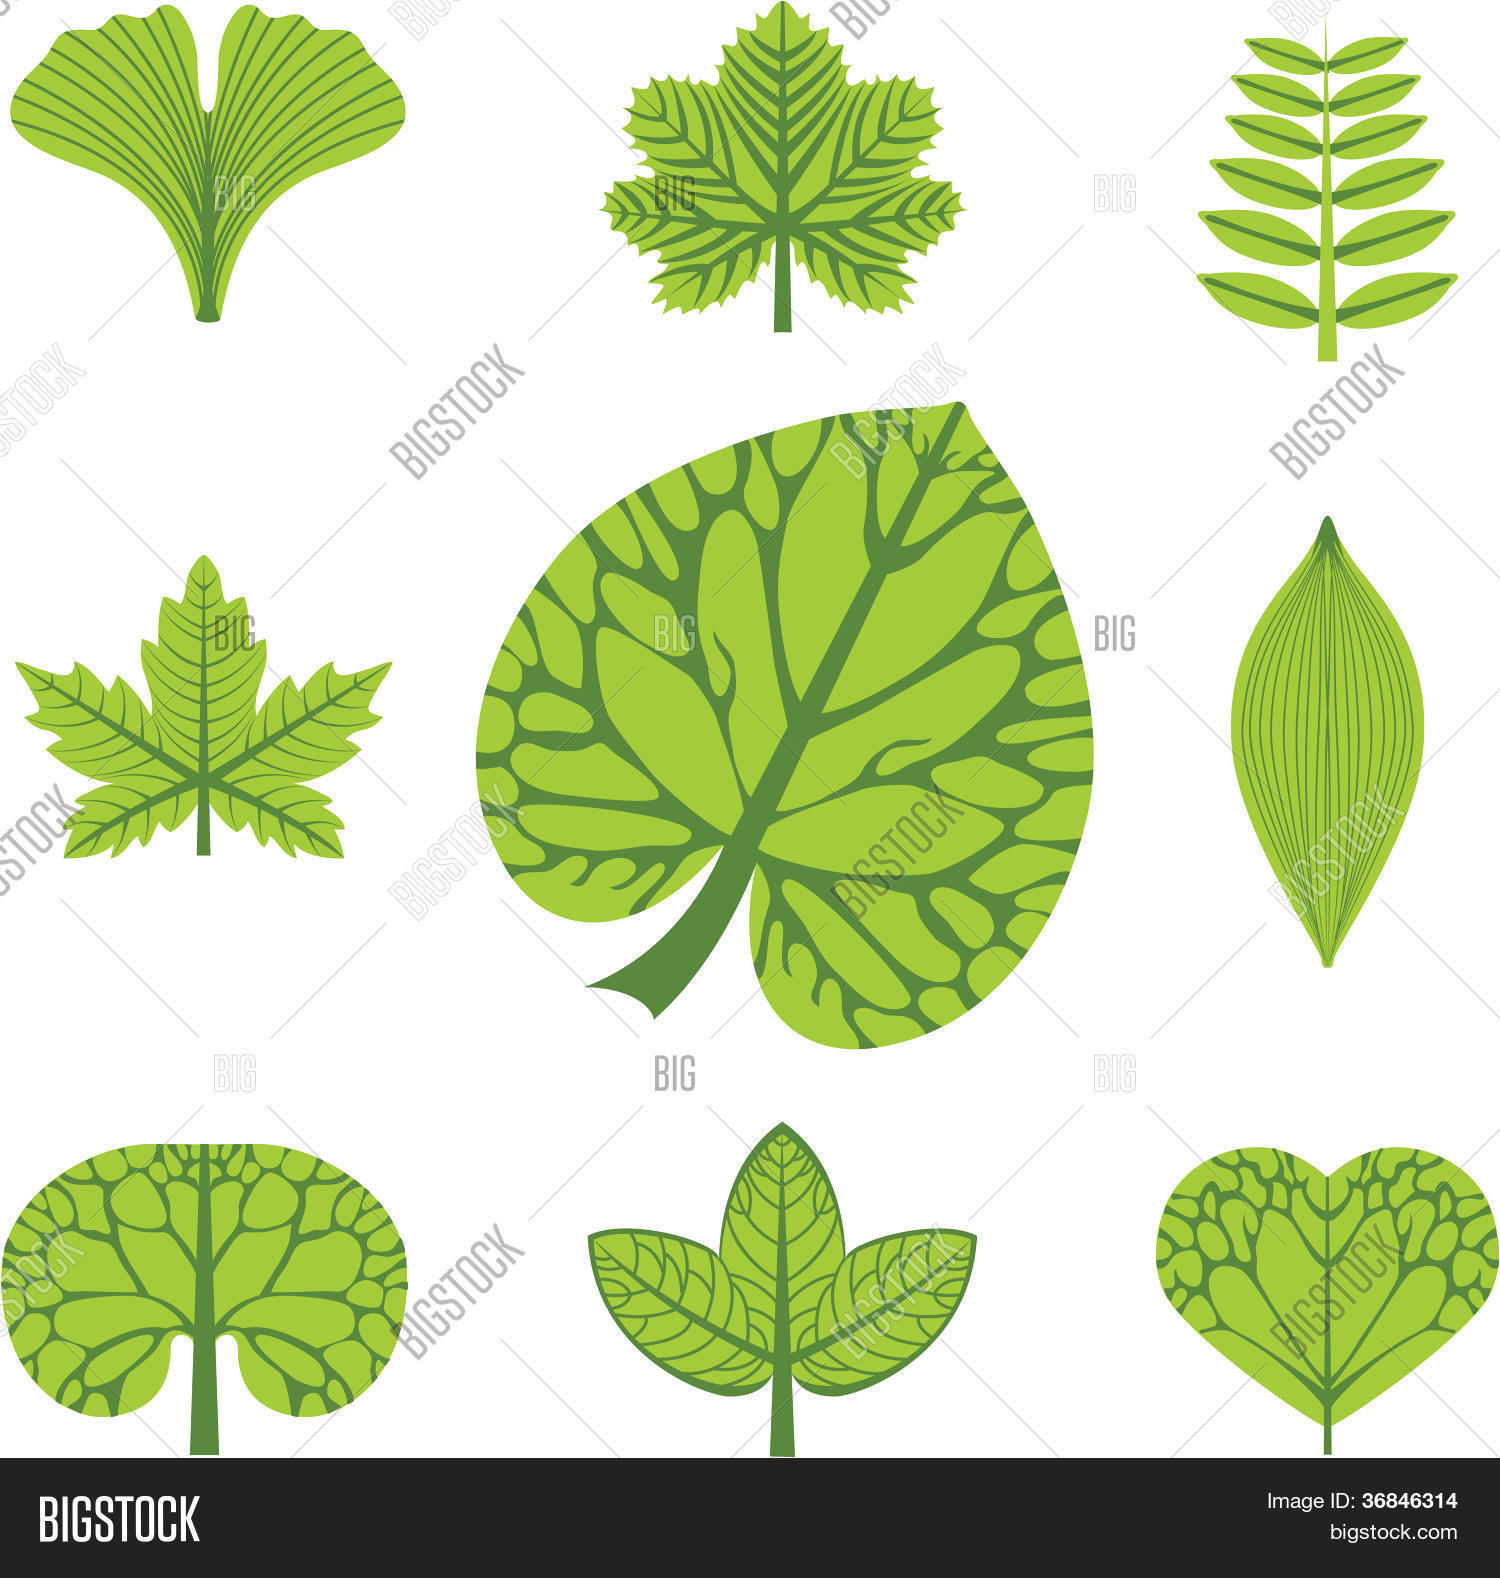 Lilies Types Of Leafs: Different Types Leaves, Vector Vector & Photo